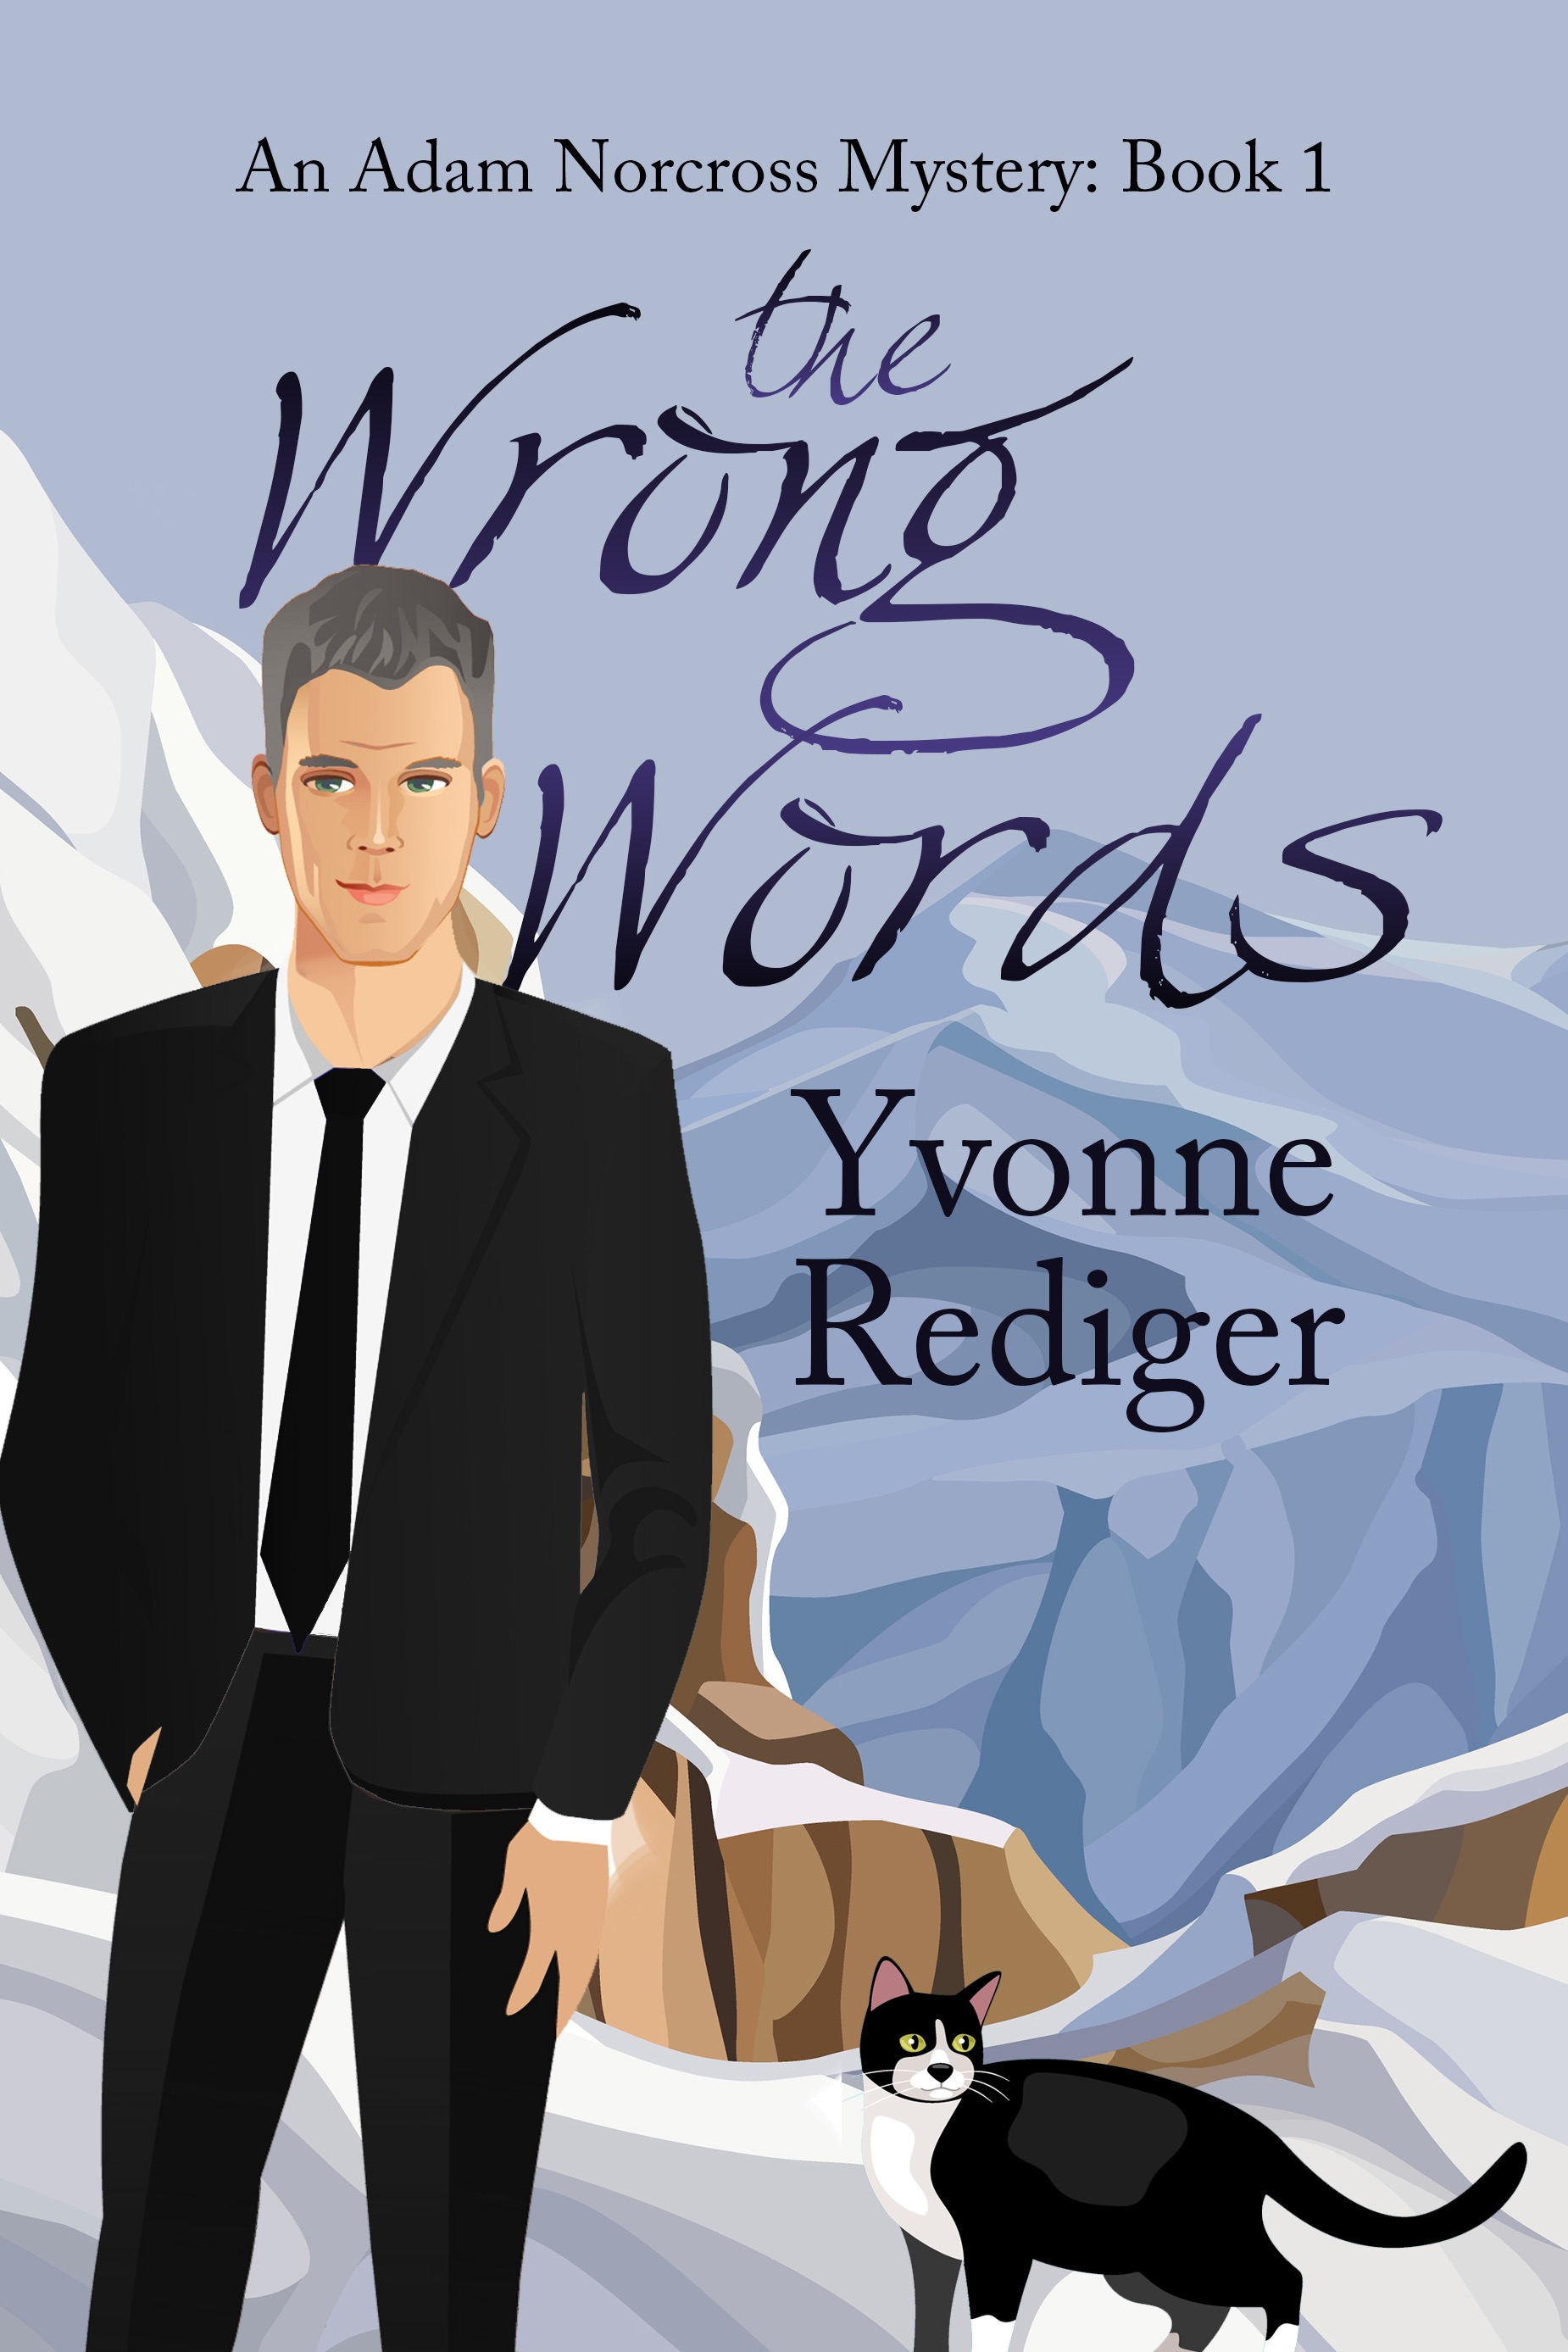 The Wrong Words - New Release